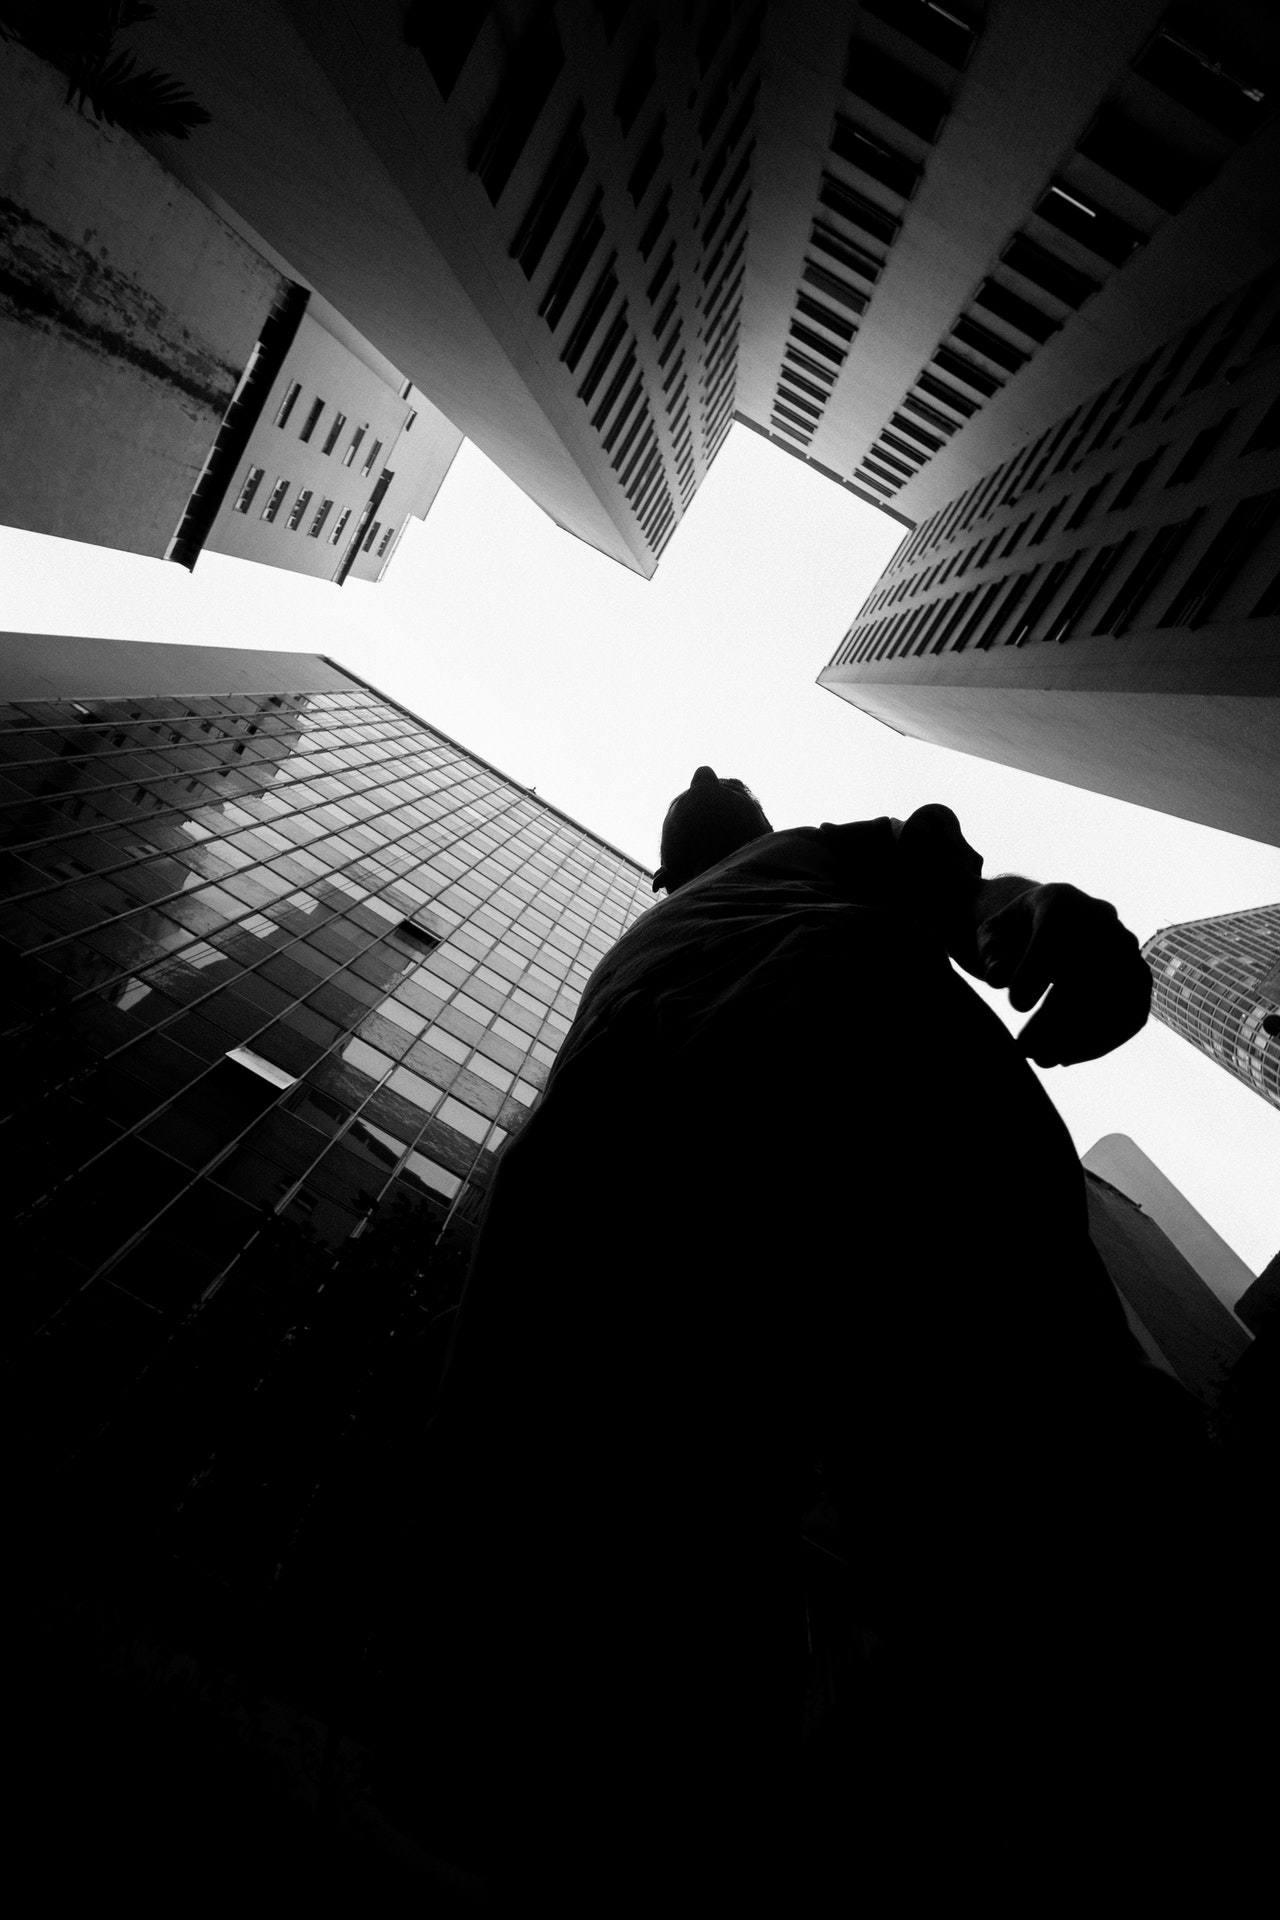 architecture-black-and-white-black-and-white-1820046.jpg